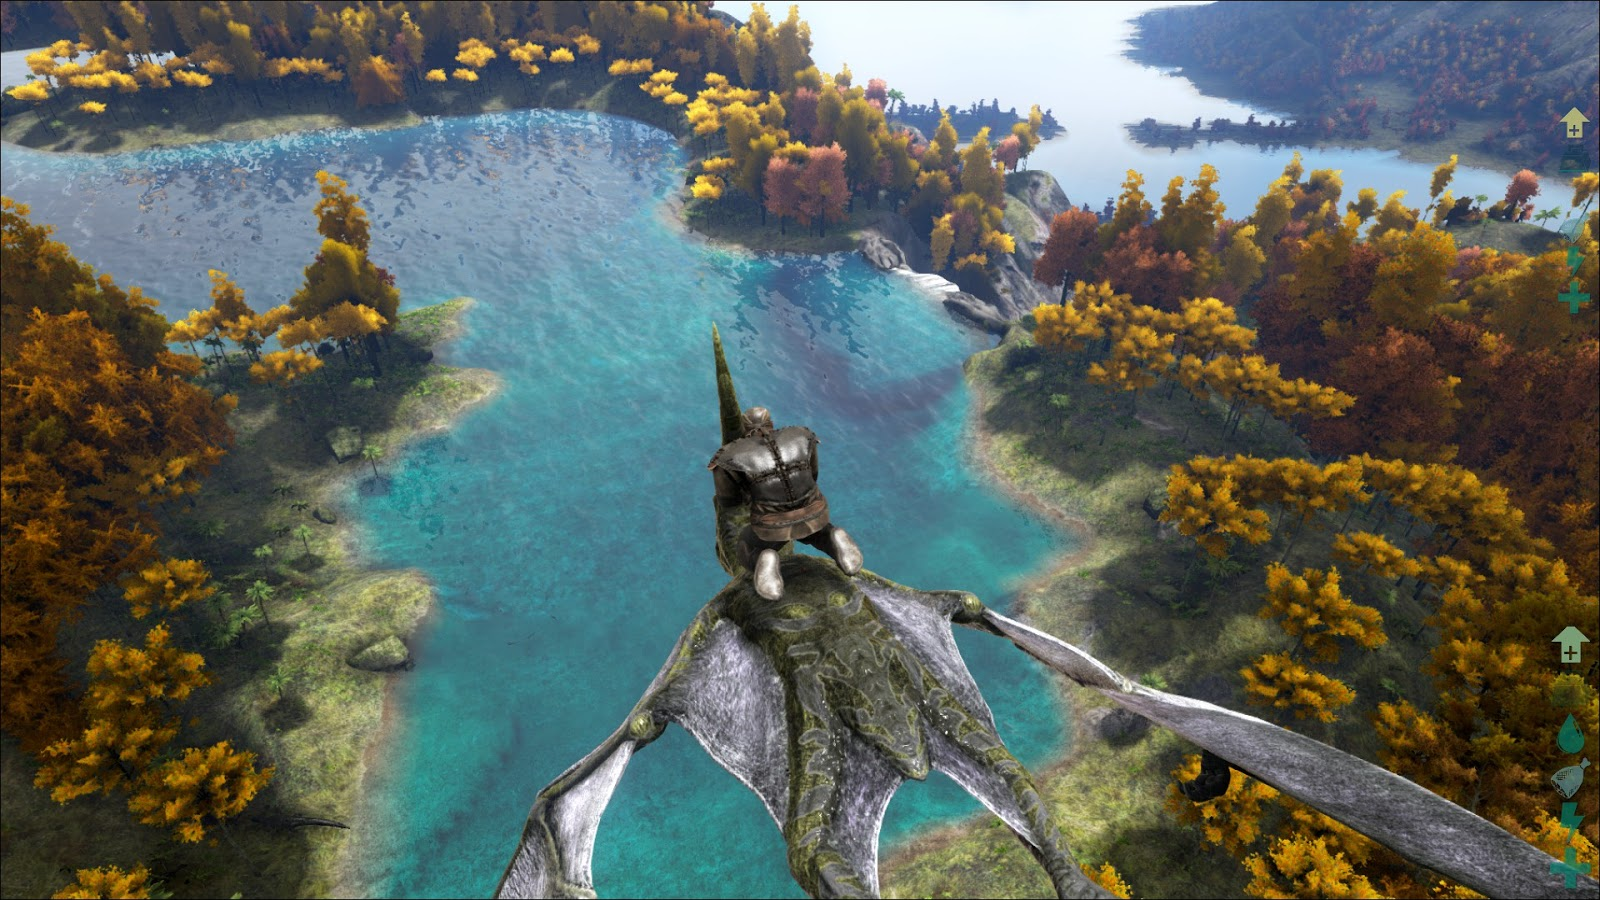 For Me This Is The Best Mod So Far, This Mod Contains A Really Big Map  Which About Three Times Than The Standard Map In The Game.